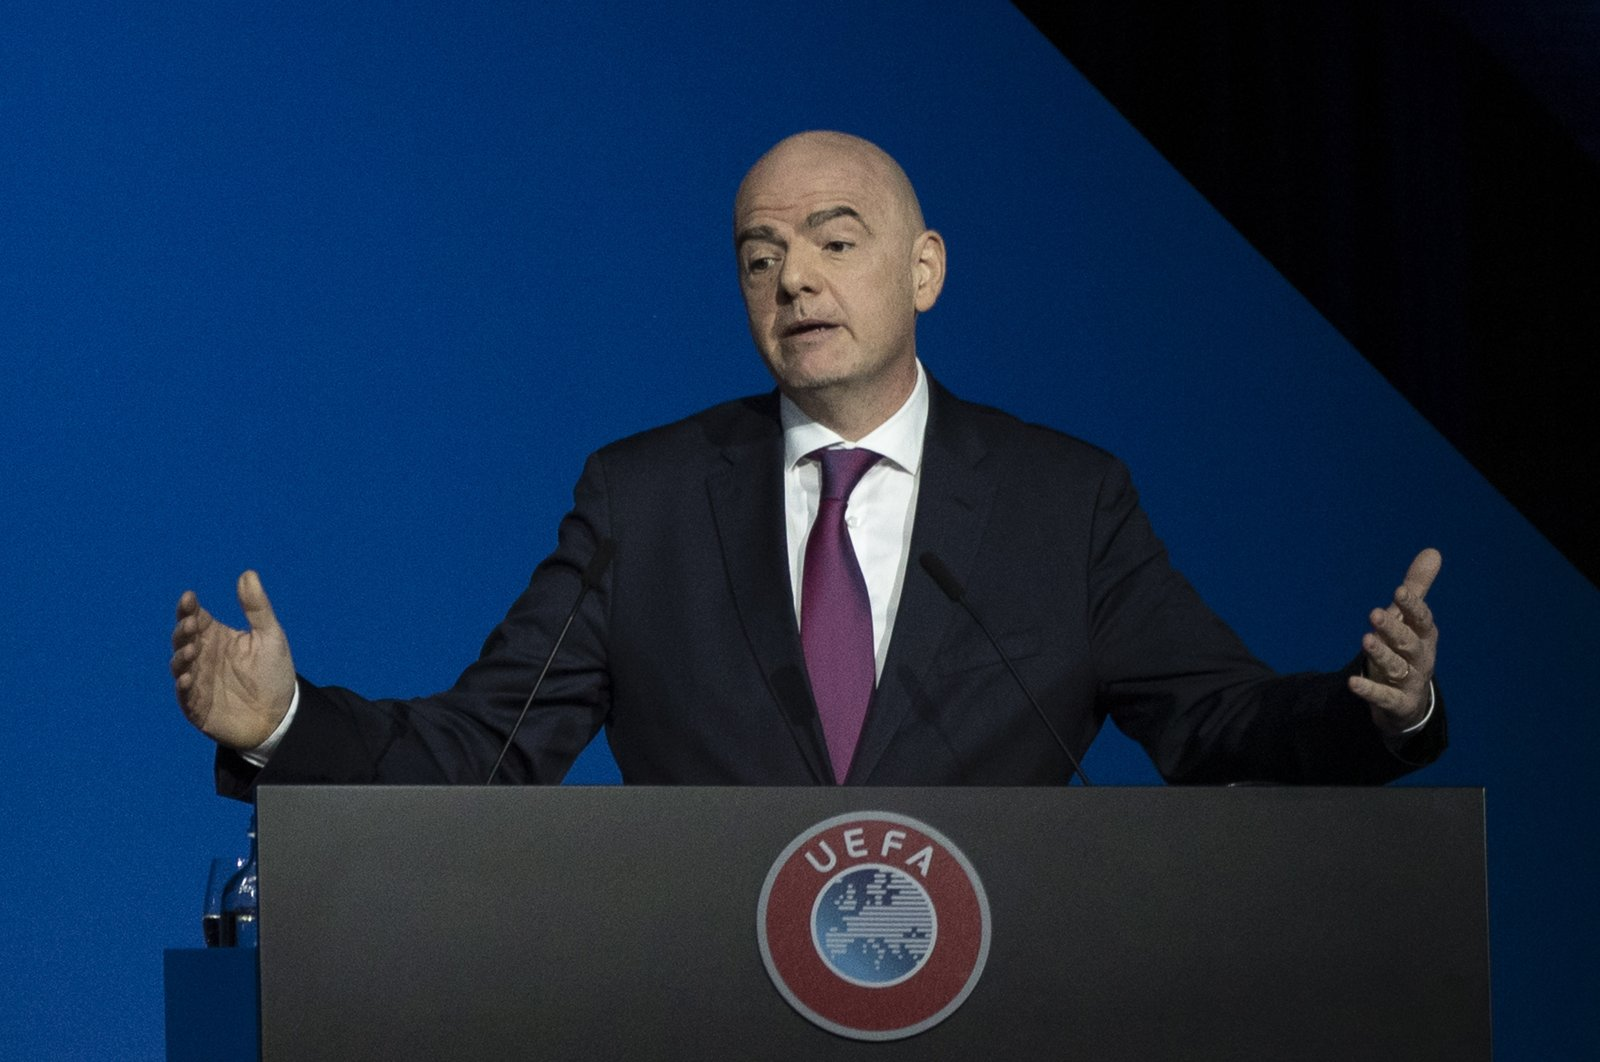 FIFA President Gianni Infantino addresses a meeting of European soccer leaders at the congress of the UEFA governing body in Amsterdam, Netherlands on March 3, 2020. (AP Photo)